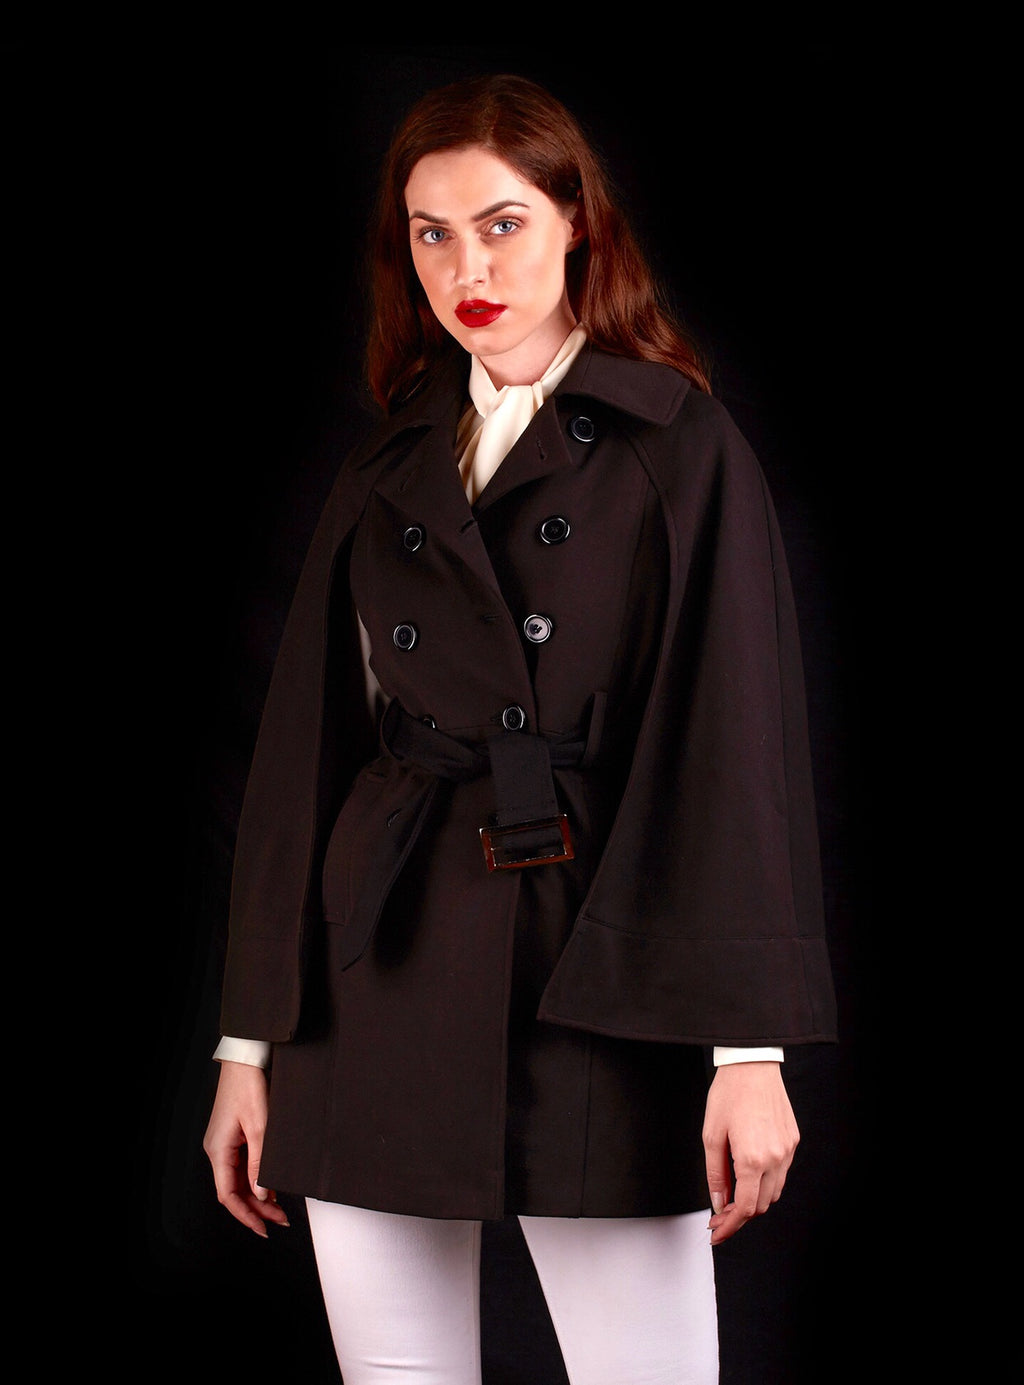 The Opera Cape Jacket In Suiting Fabric